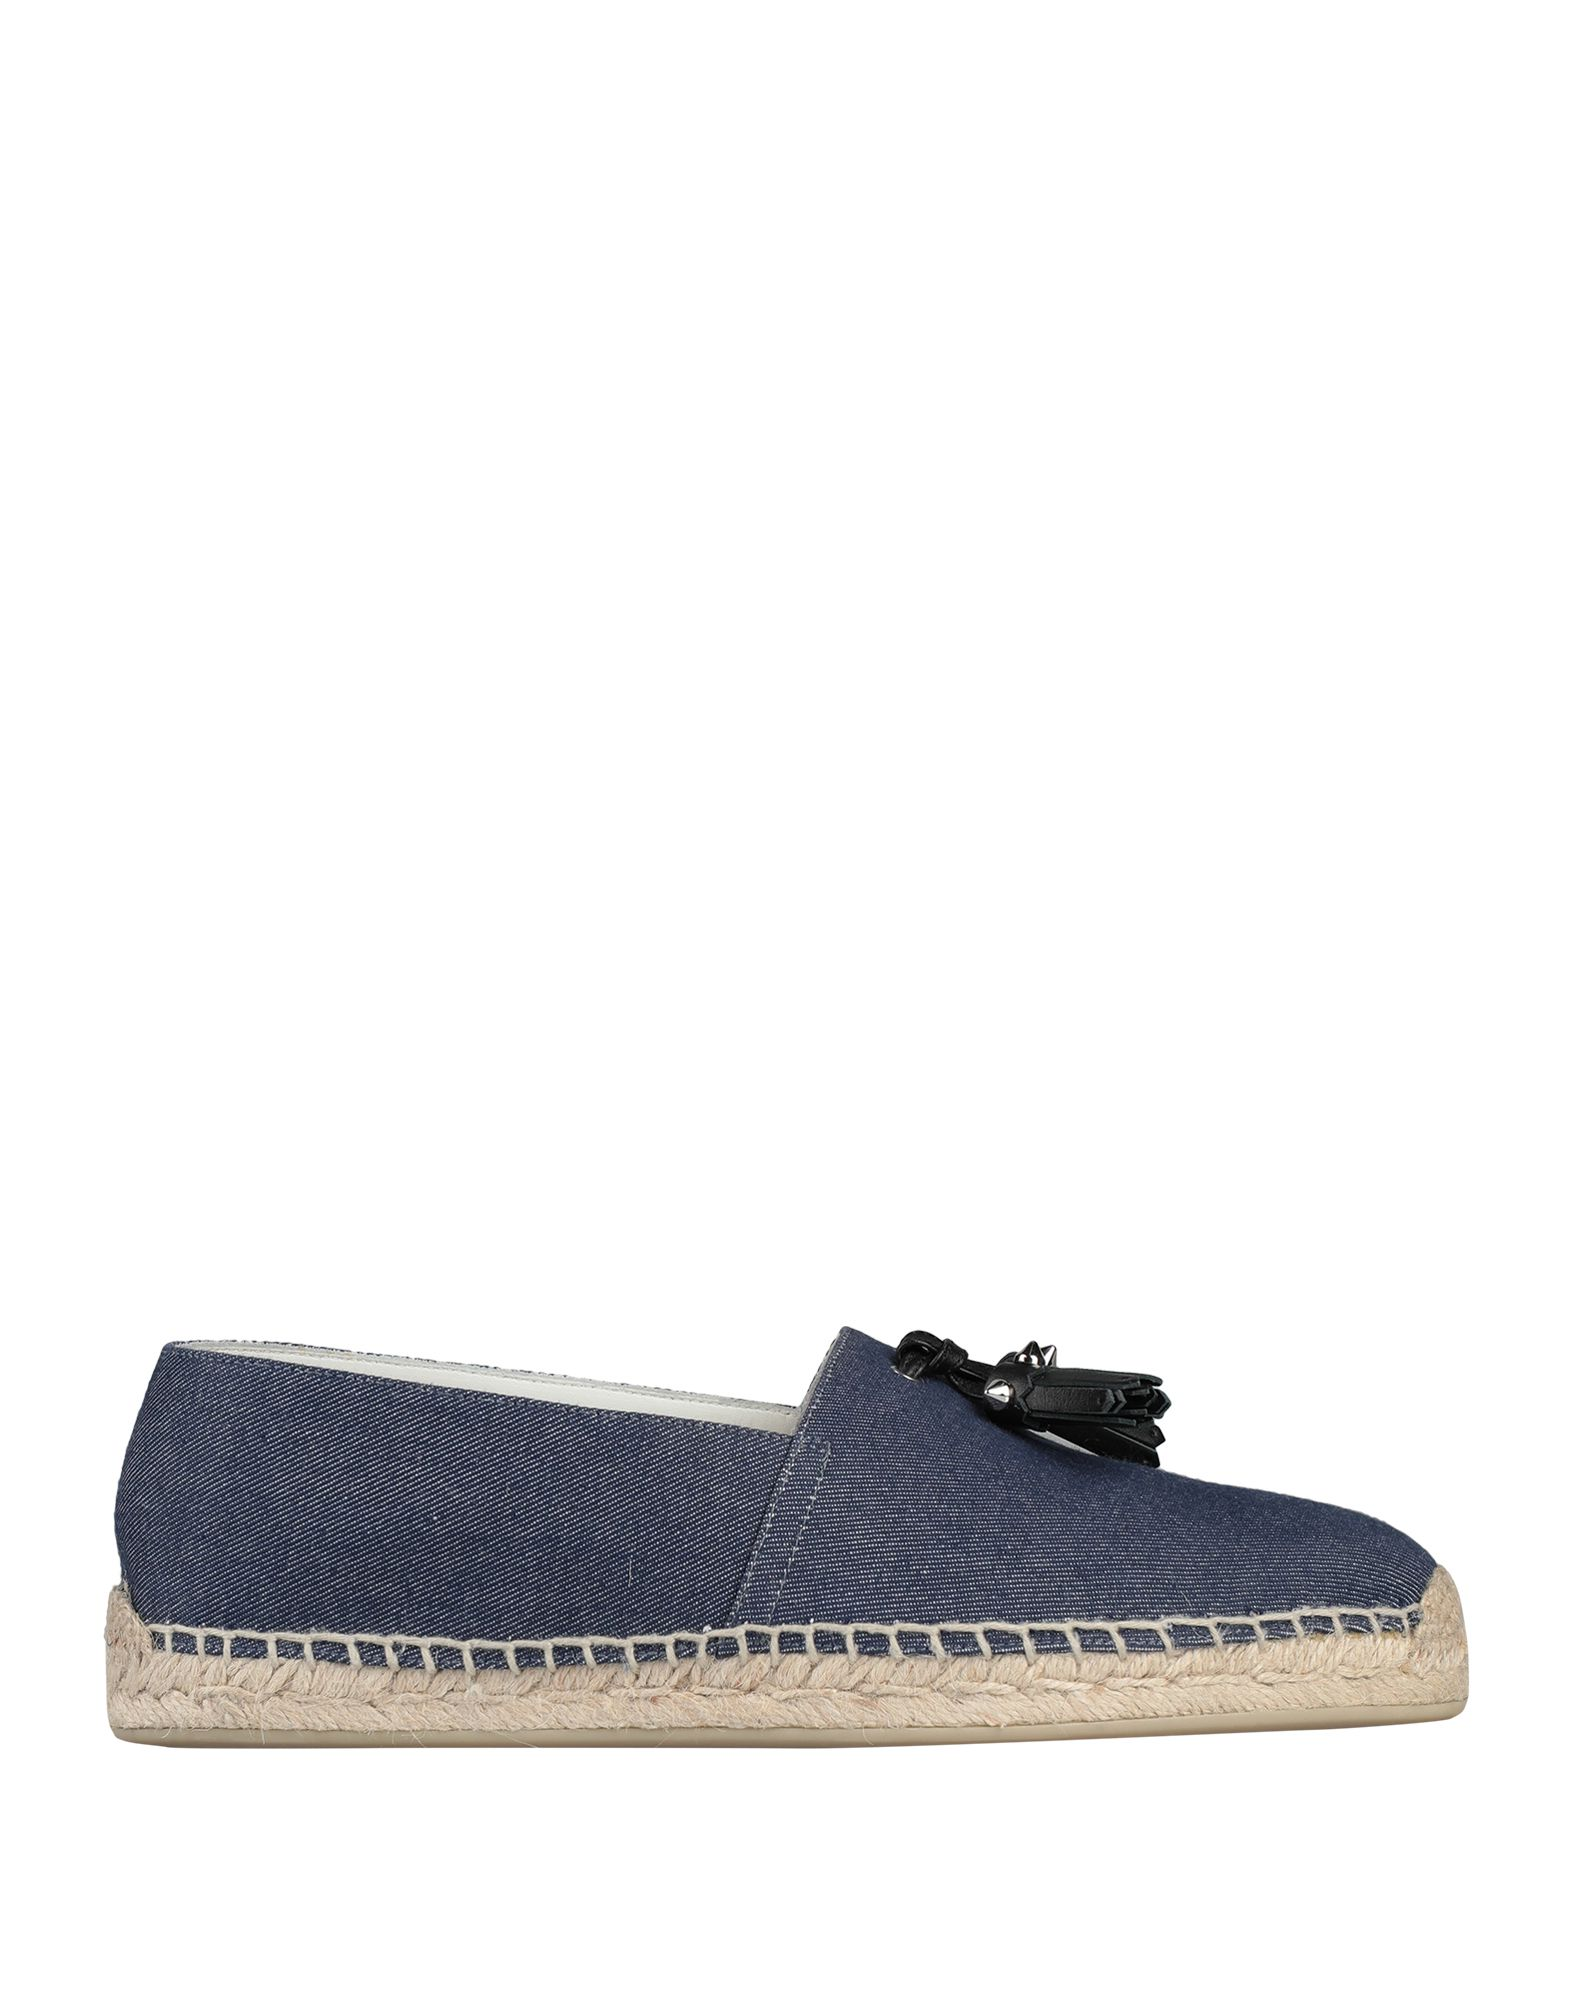 CHRISTIAN LOUBOUTIN Espadrilles. leather, denim, tassels, solid color, round toeline, flat, leather lining, rubber cleated sole, contains non-textile parts of animal origin, small sized. Textile fibers, Calfskin